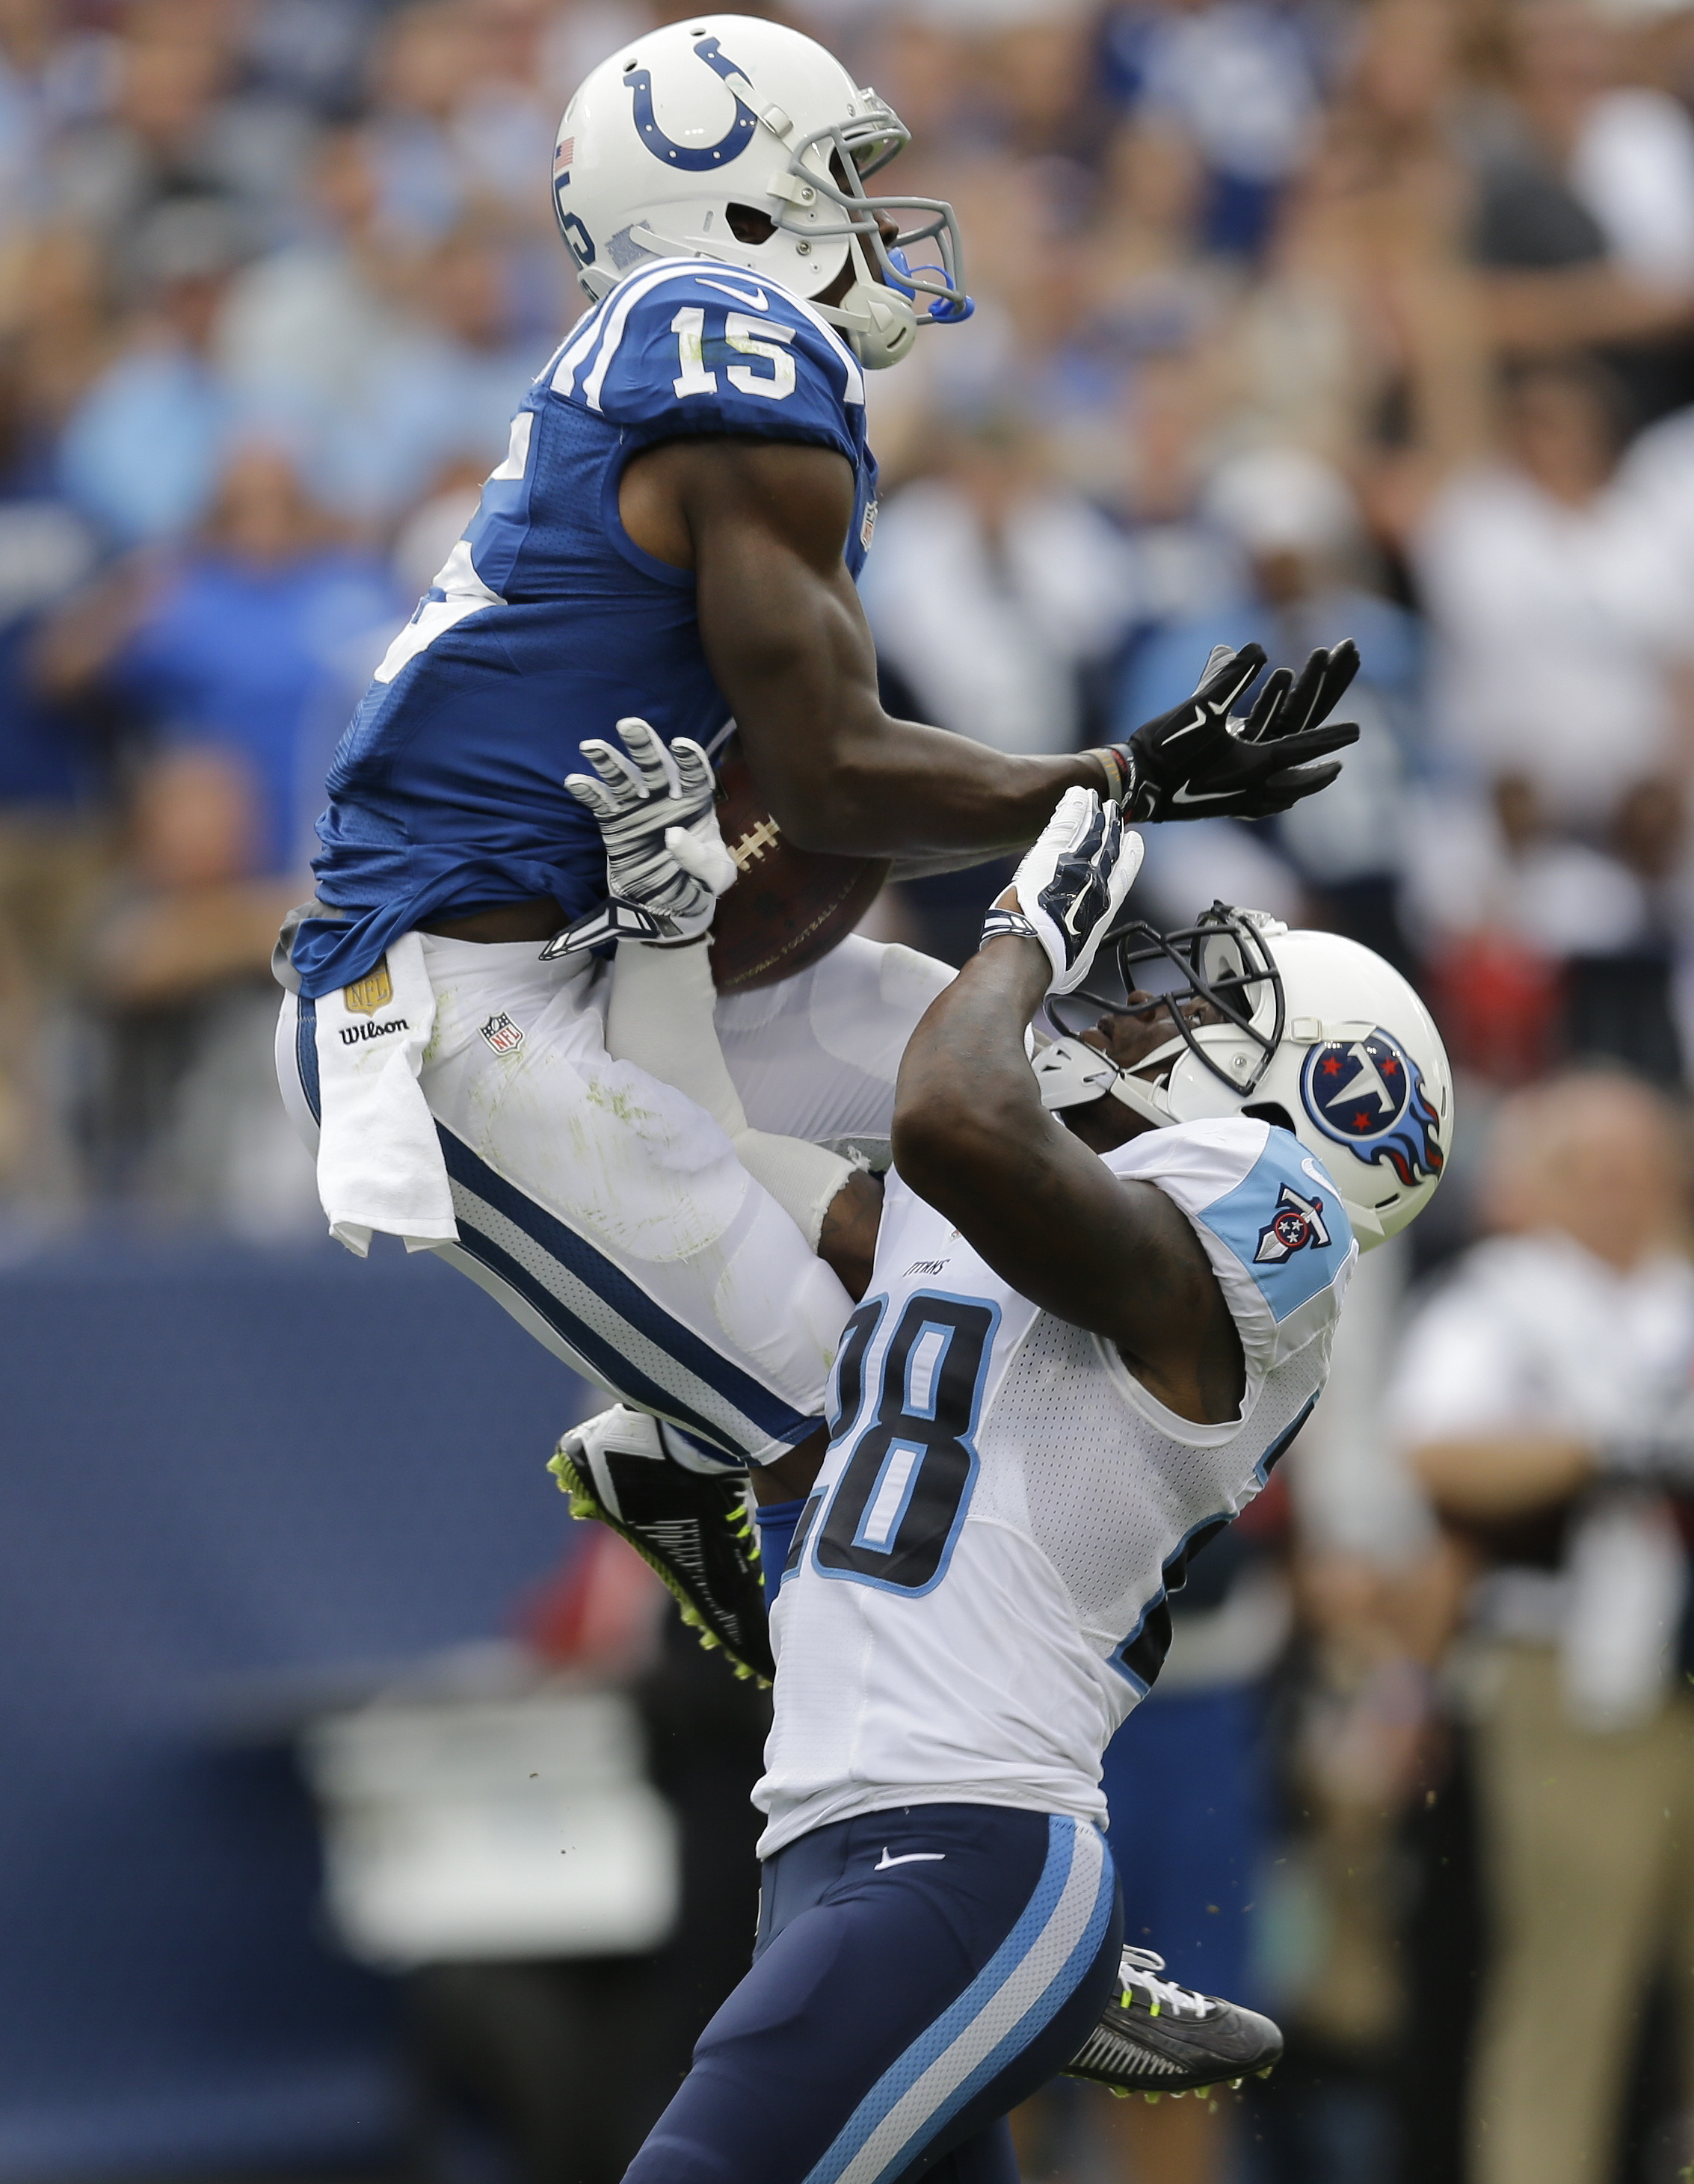 Indianapolis Colts wide receiver Phillip Dorsett (15) catches a 35-yard touchdown pass as he is defended by Tennessee Titans strong safety Marqueston Huff (28) in the second half of an NFL football game Sunday, Sept. 27, 2015, in Nashville, Tenn. (AP Phot